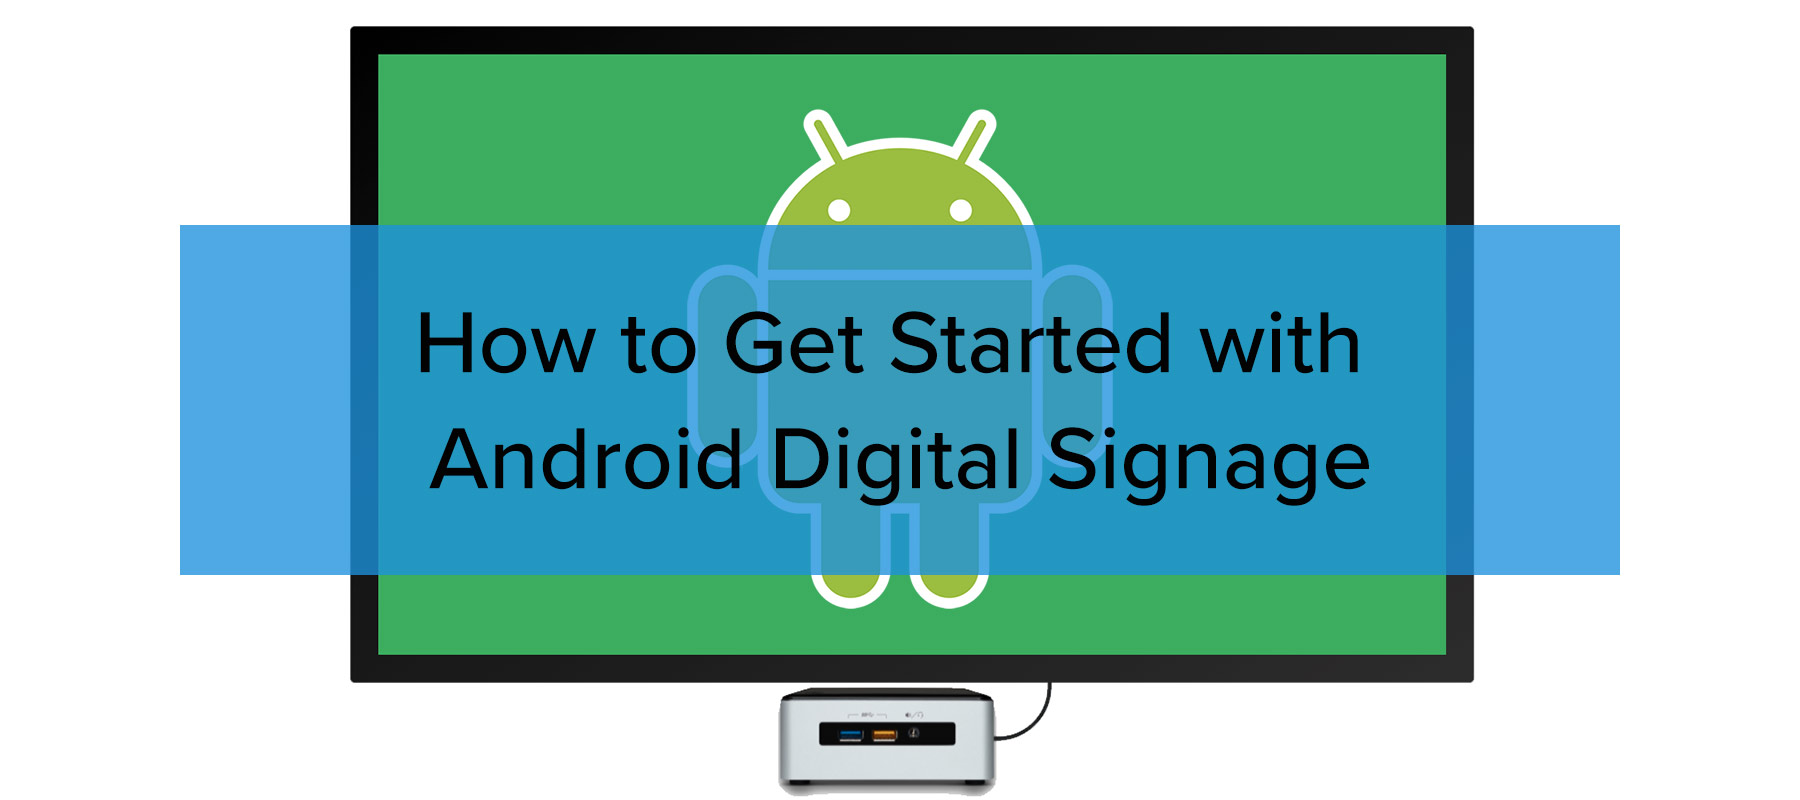 How to get started with Android Digital Signage